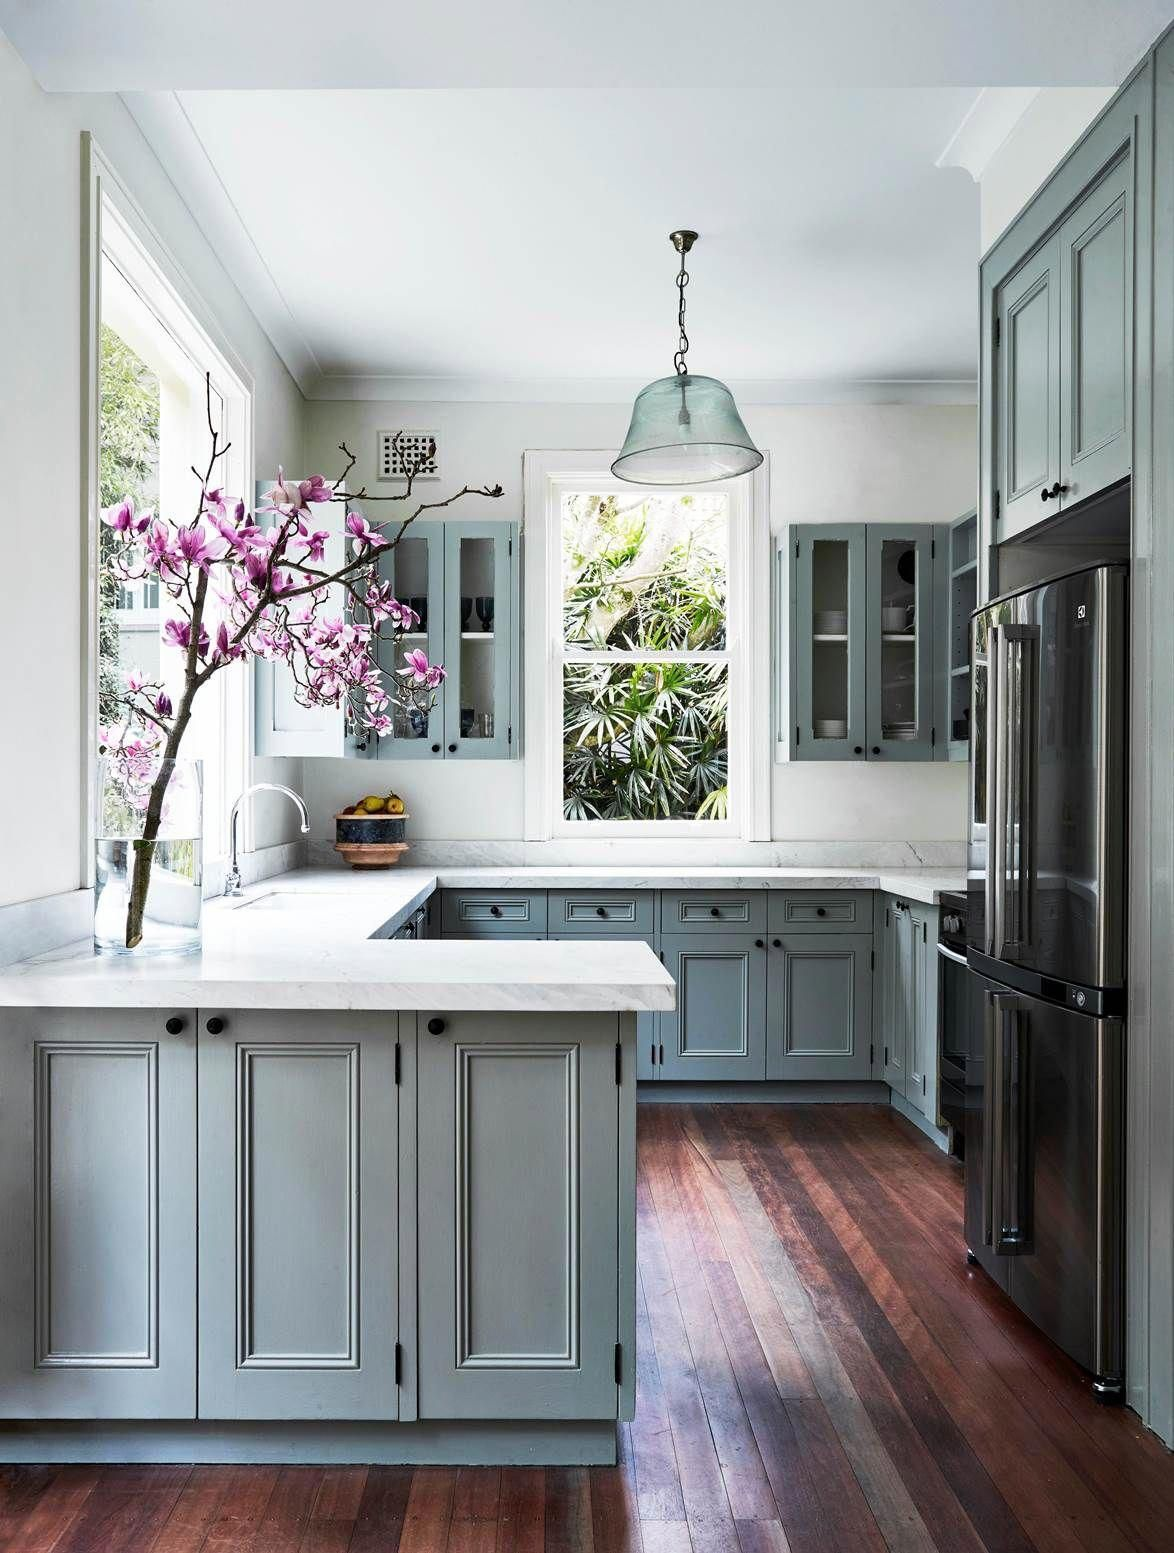 French Country Kitchen Decor Decorating A House Home Decor Kitchen Accessories 20190927 Kitchen Design Small Kitchen Remodel Small Kitchen Renovation